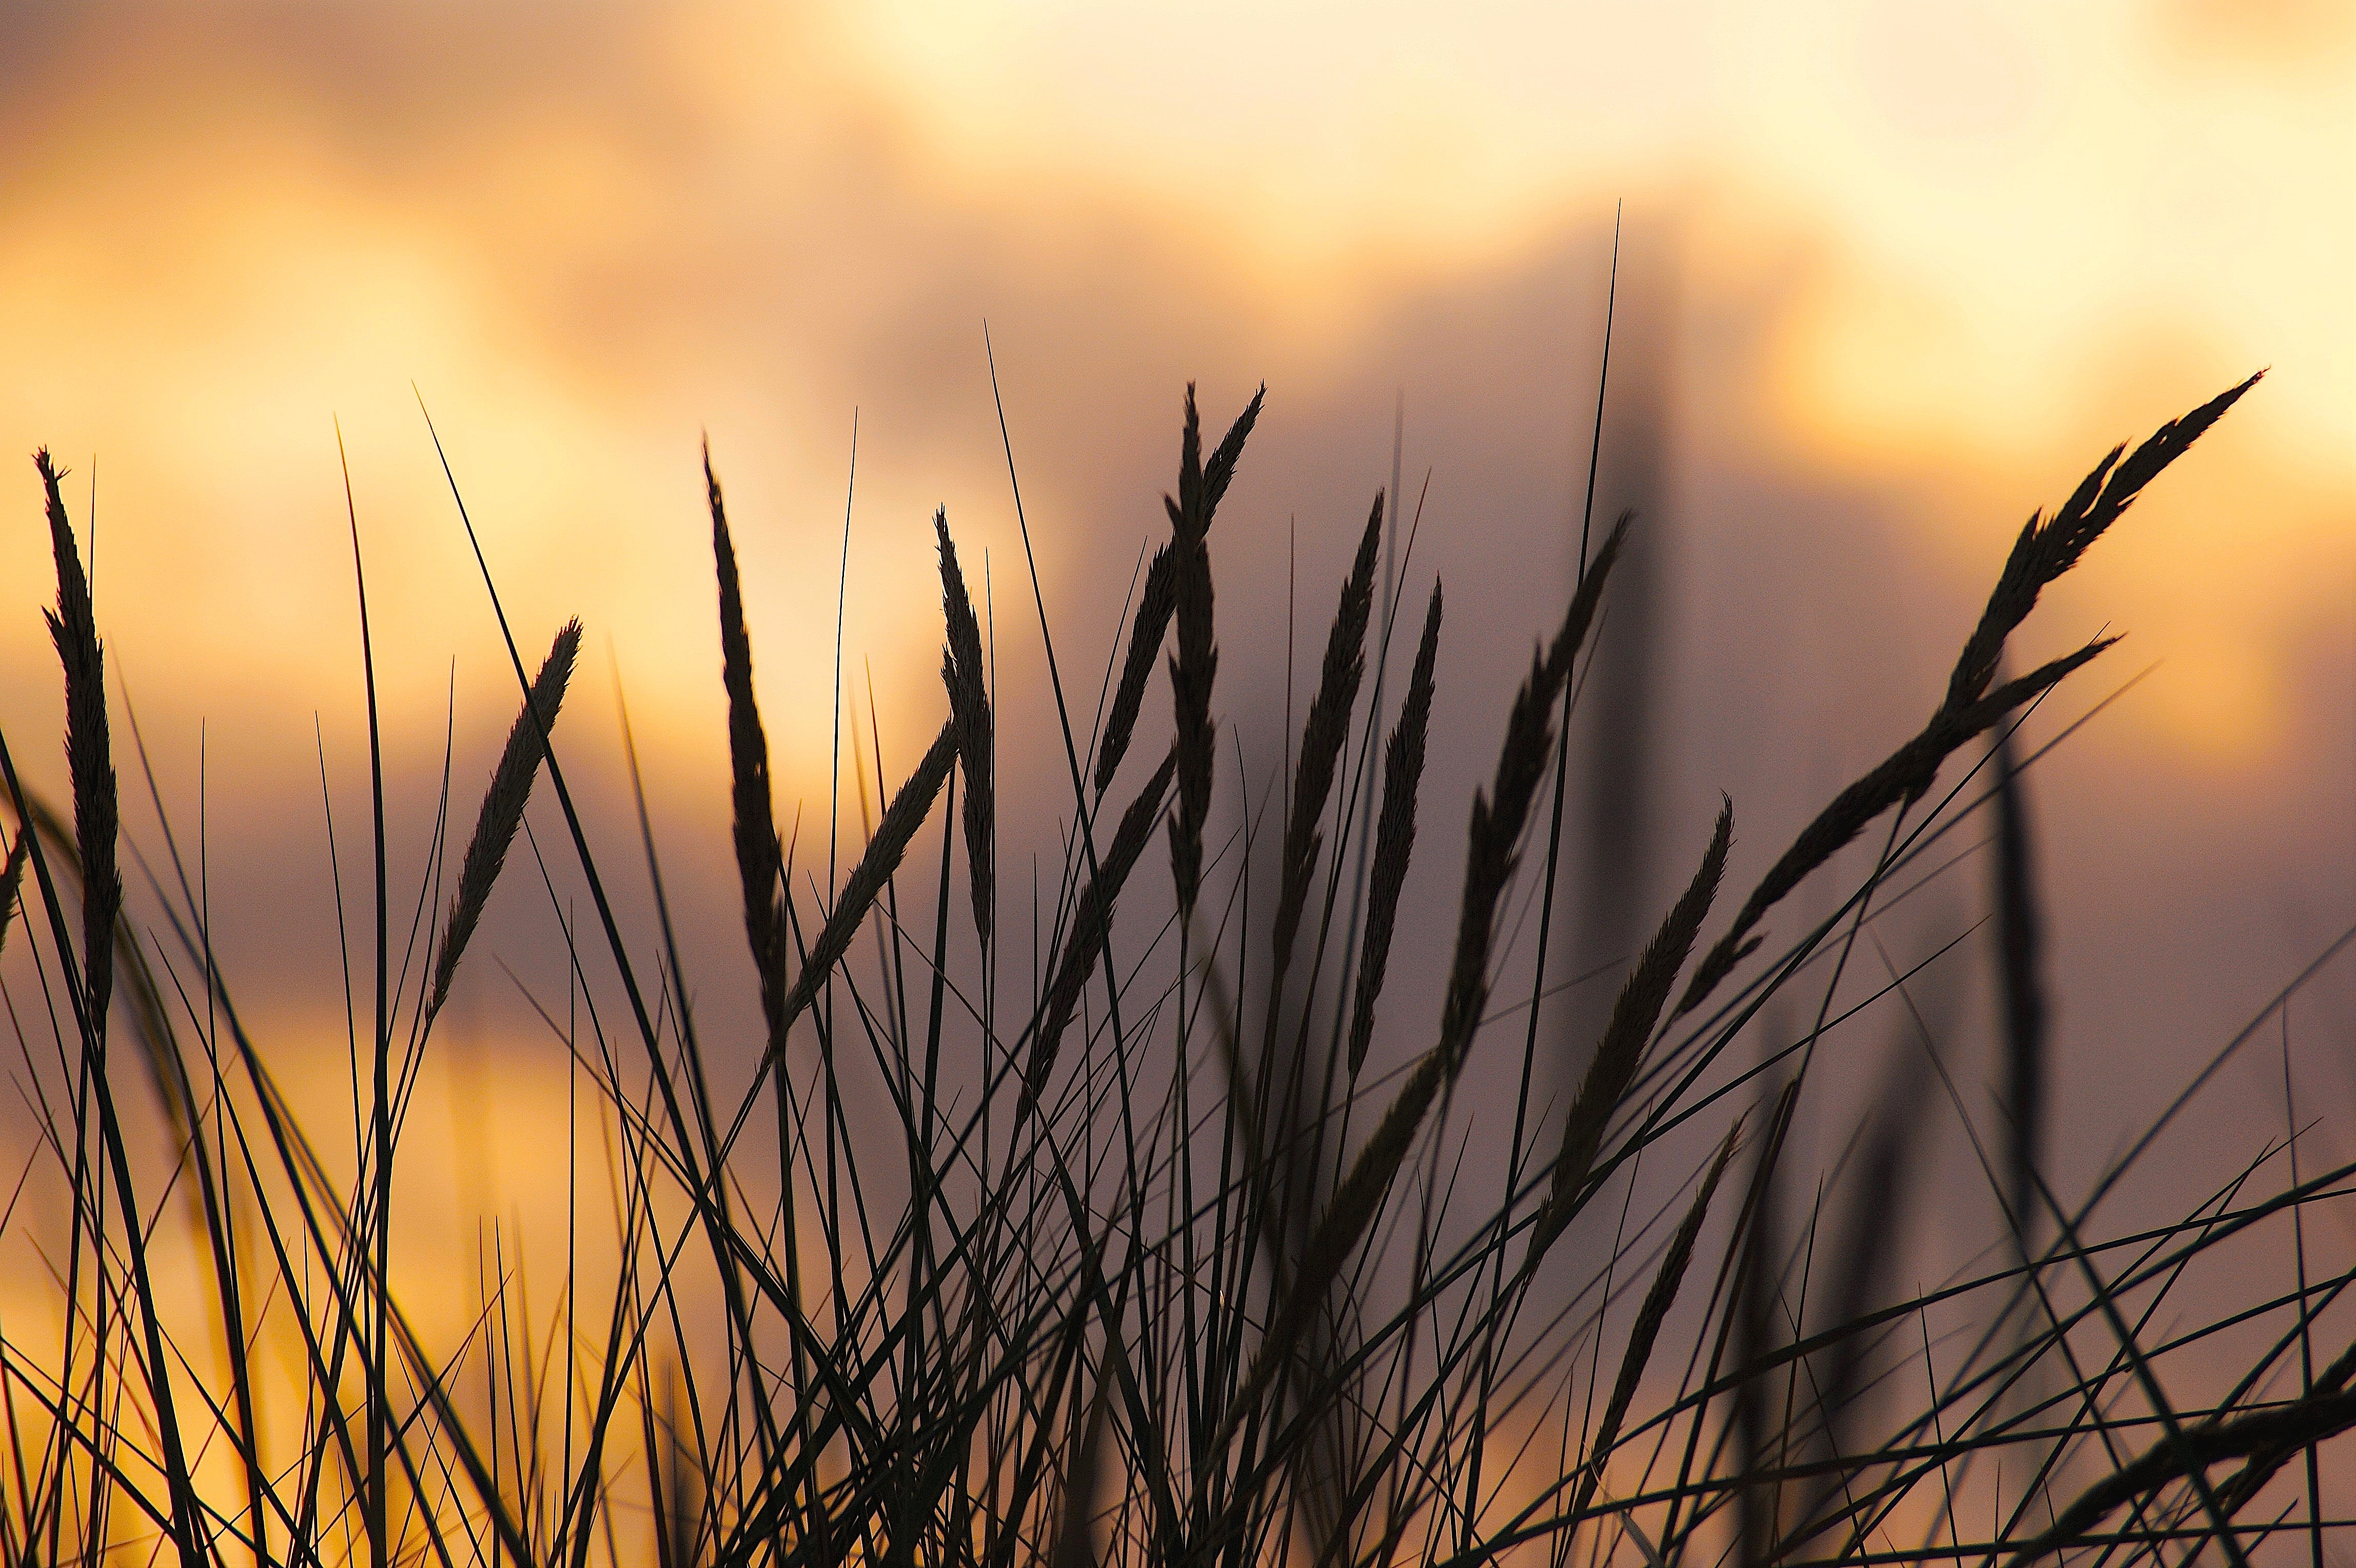 Large Hd Wallpapers For Laptop Silhouette Photo Of Wheat During Sunset 183 Free Stock Photo